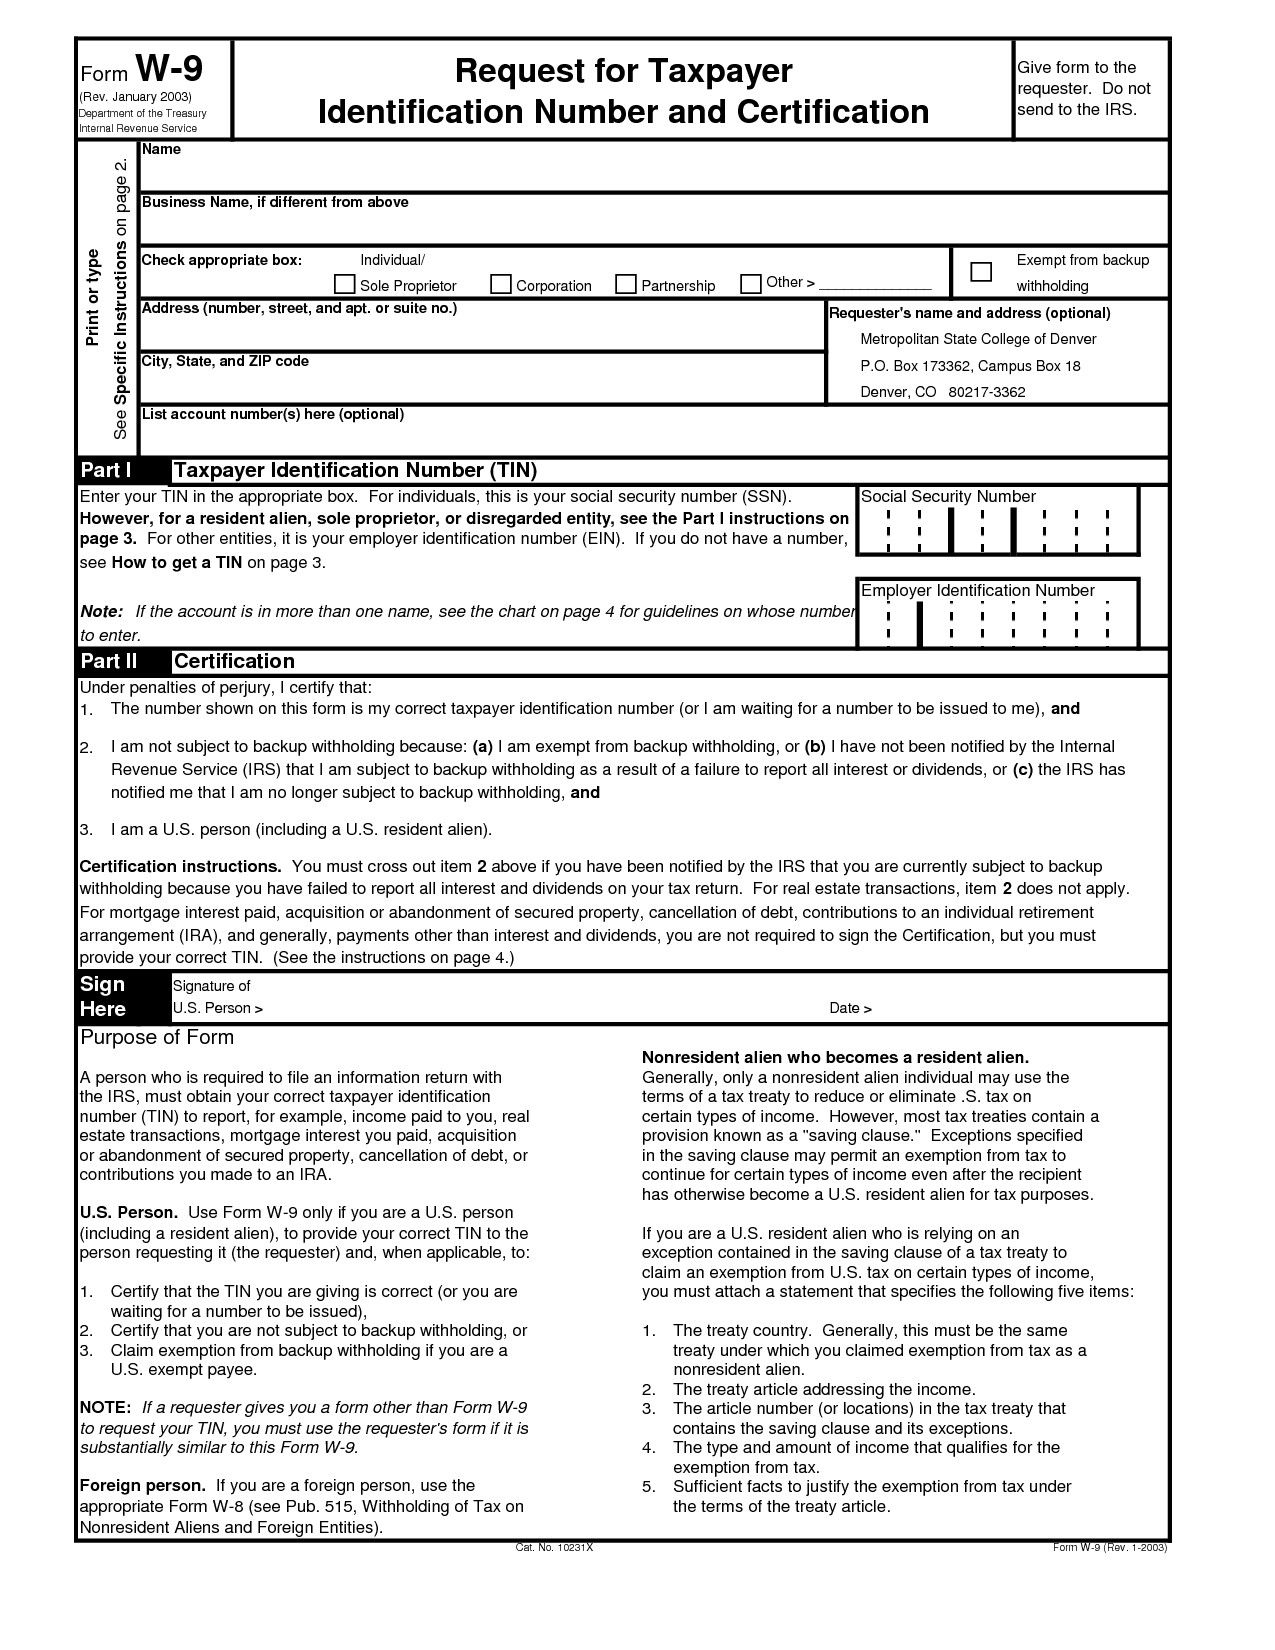 Downloadable Form W 9 Printable W9 Printable Pages In 2020 with regard to Blank W 9 Form To Print